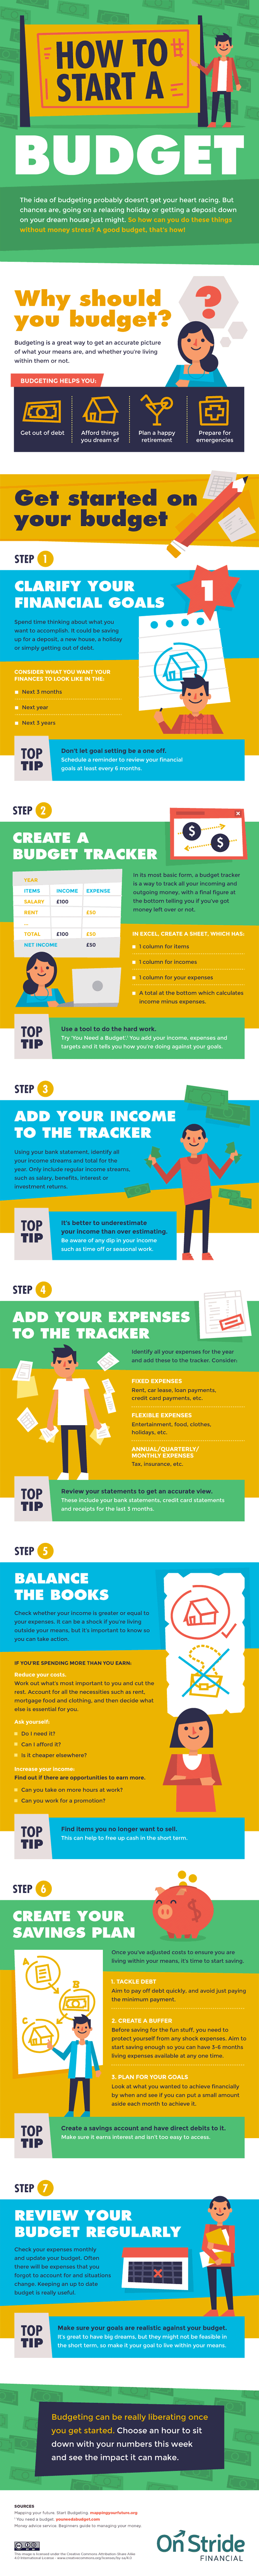 how-to-start-a-budget